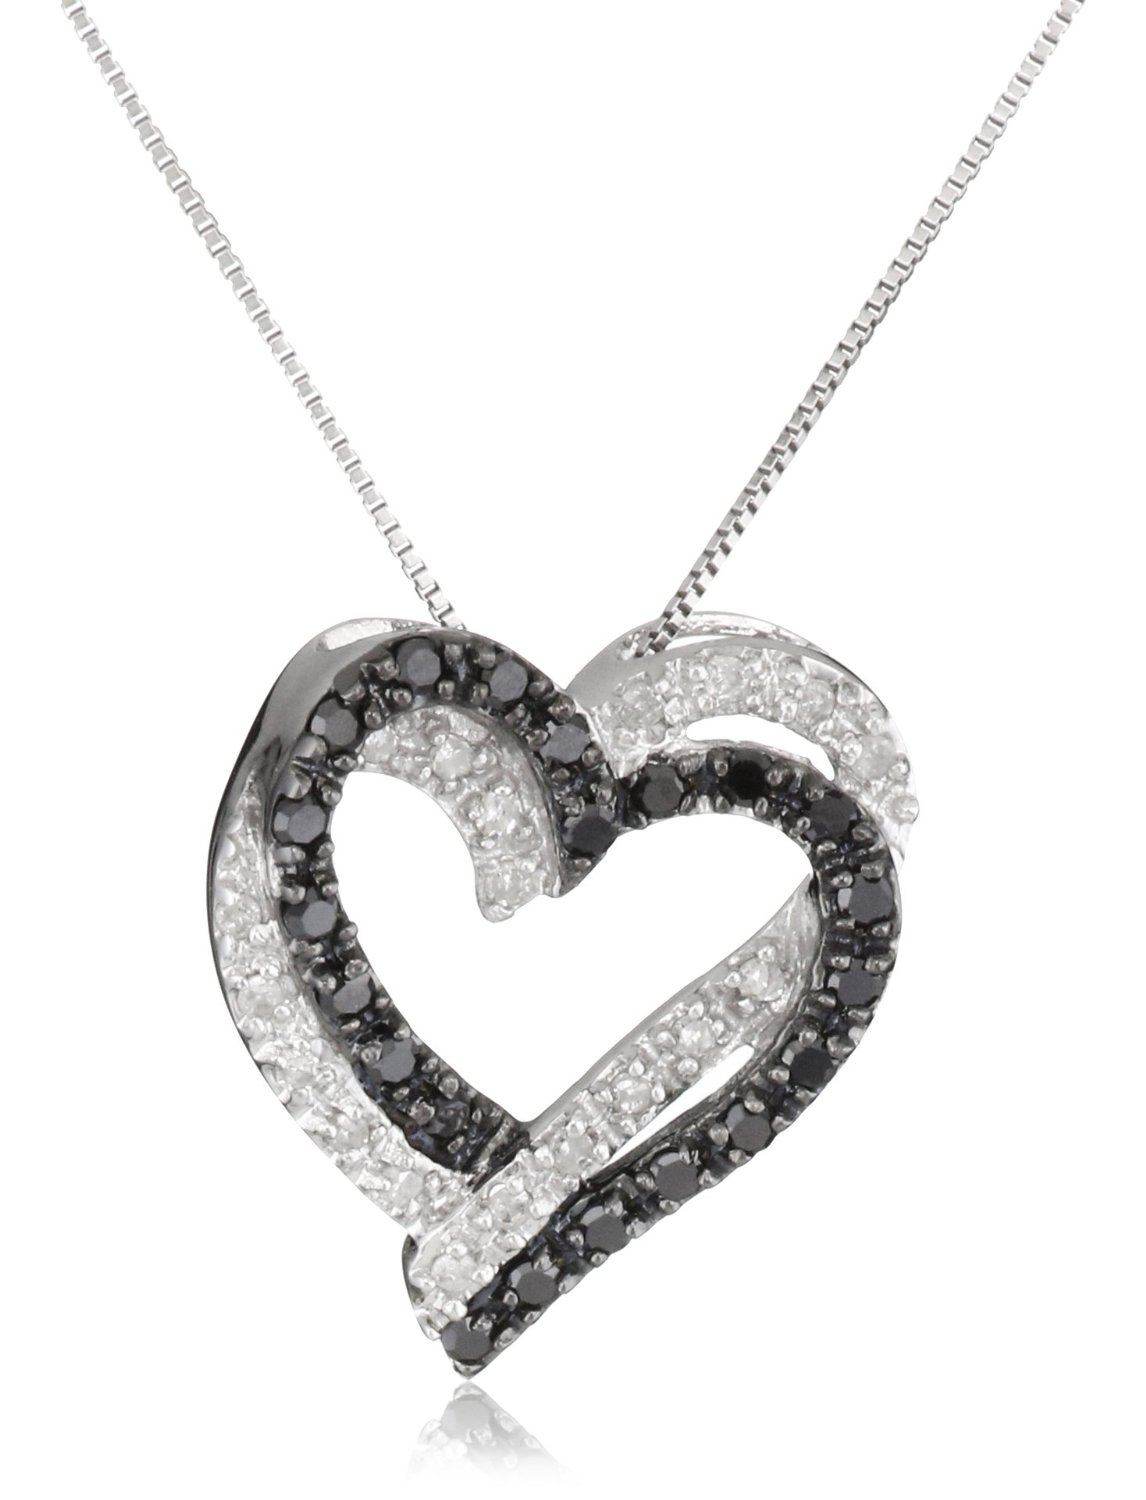 e girlfriend day diamonds women jewelry dp shaped cz pendant girl b amazon silver necklace heart com valentines sterling